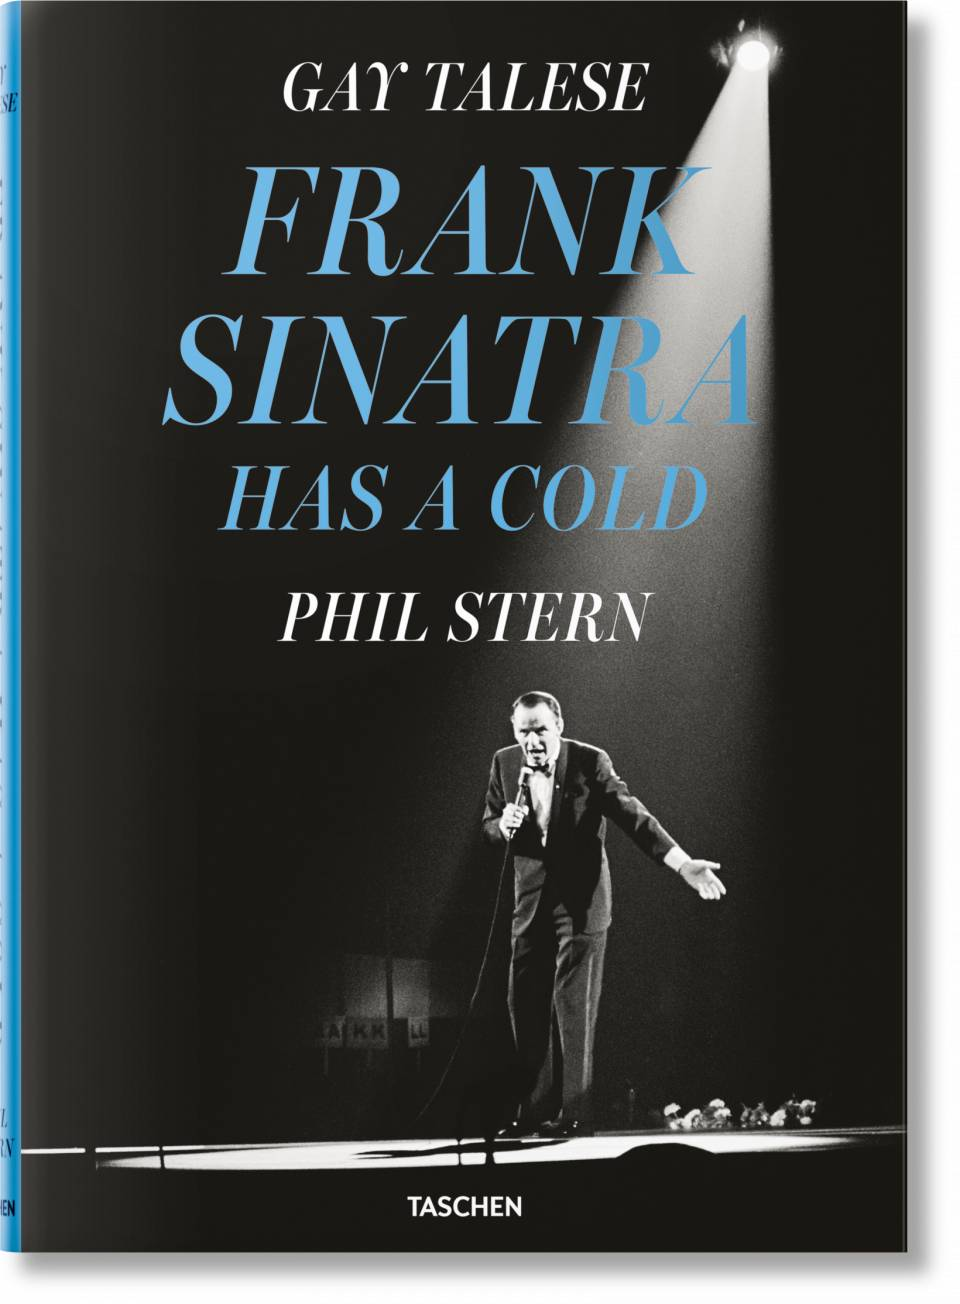 <p class='small-title'>TASCHEN</p>Gay Talese. Phil Stern. Frank Sinatra Has a Cold